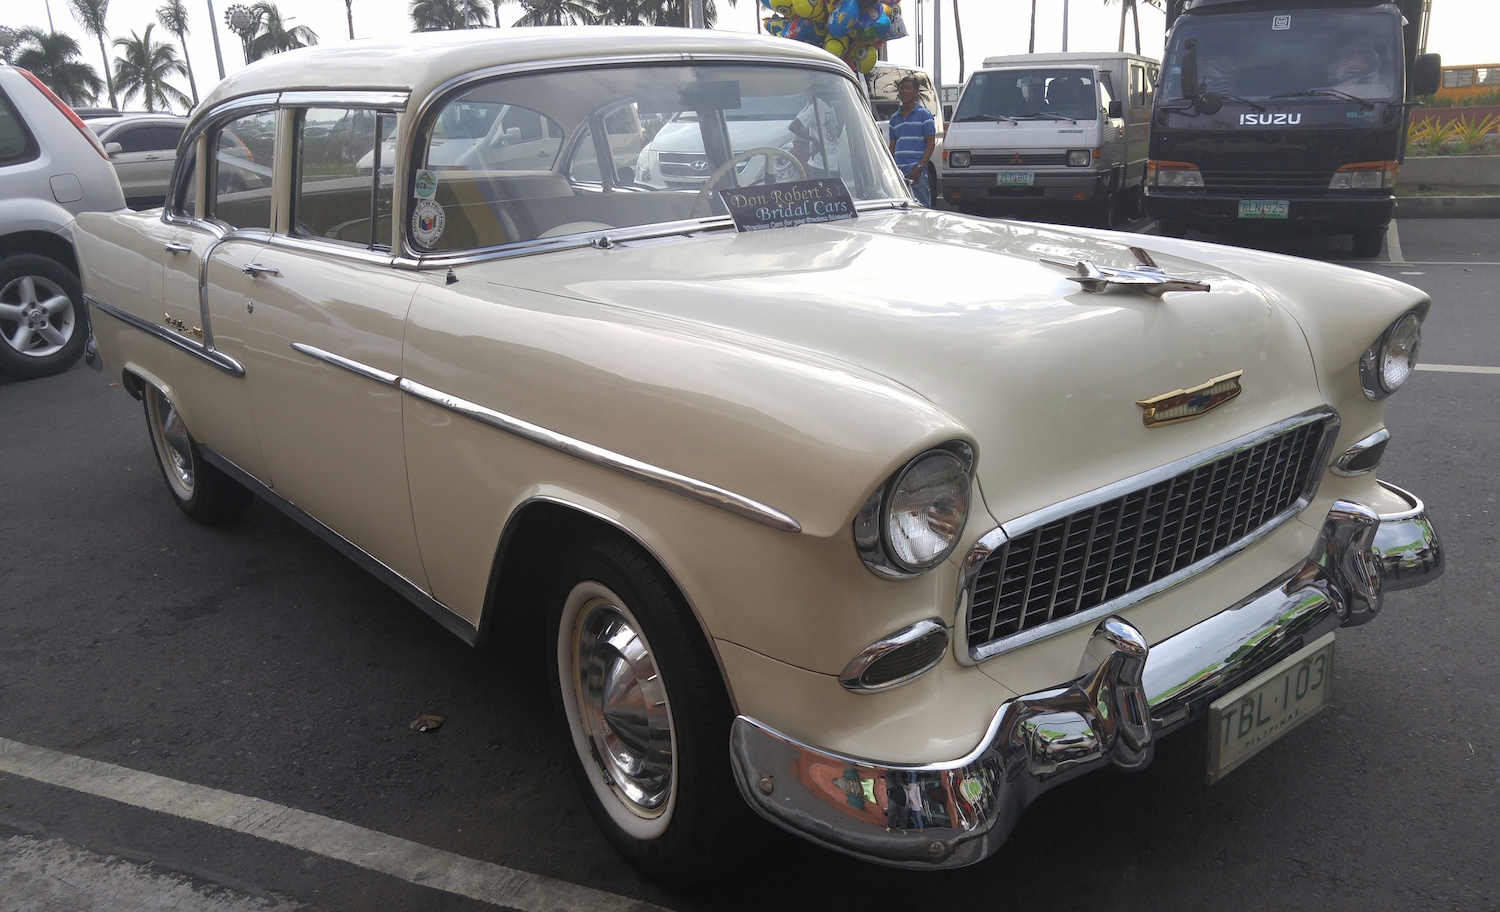 Vintage Bridal Car for Rent in Manila - Out of Town Blog